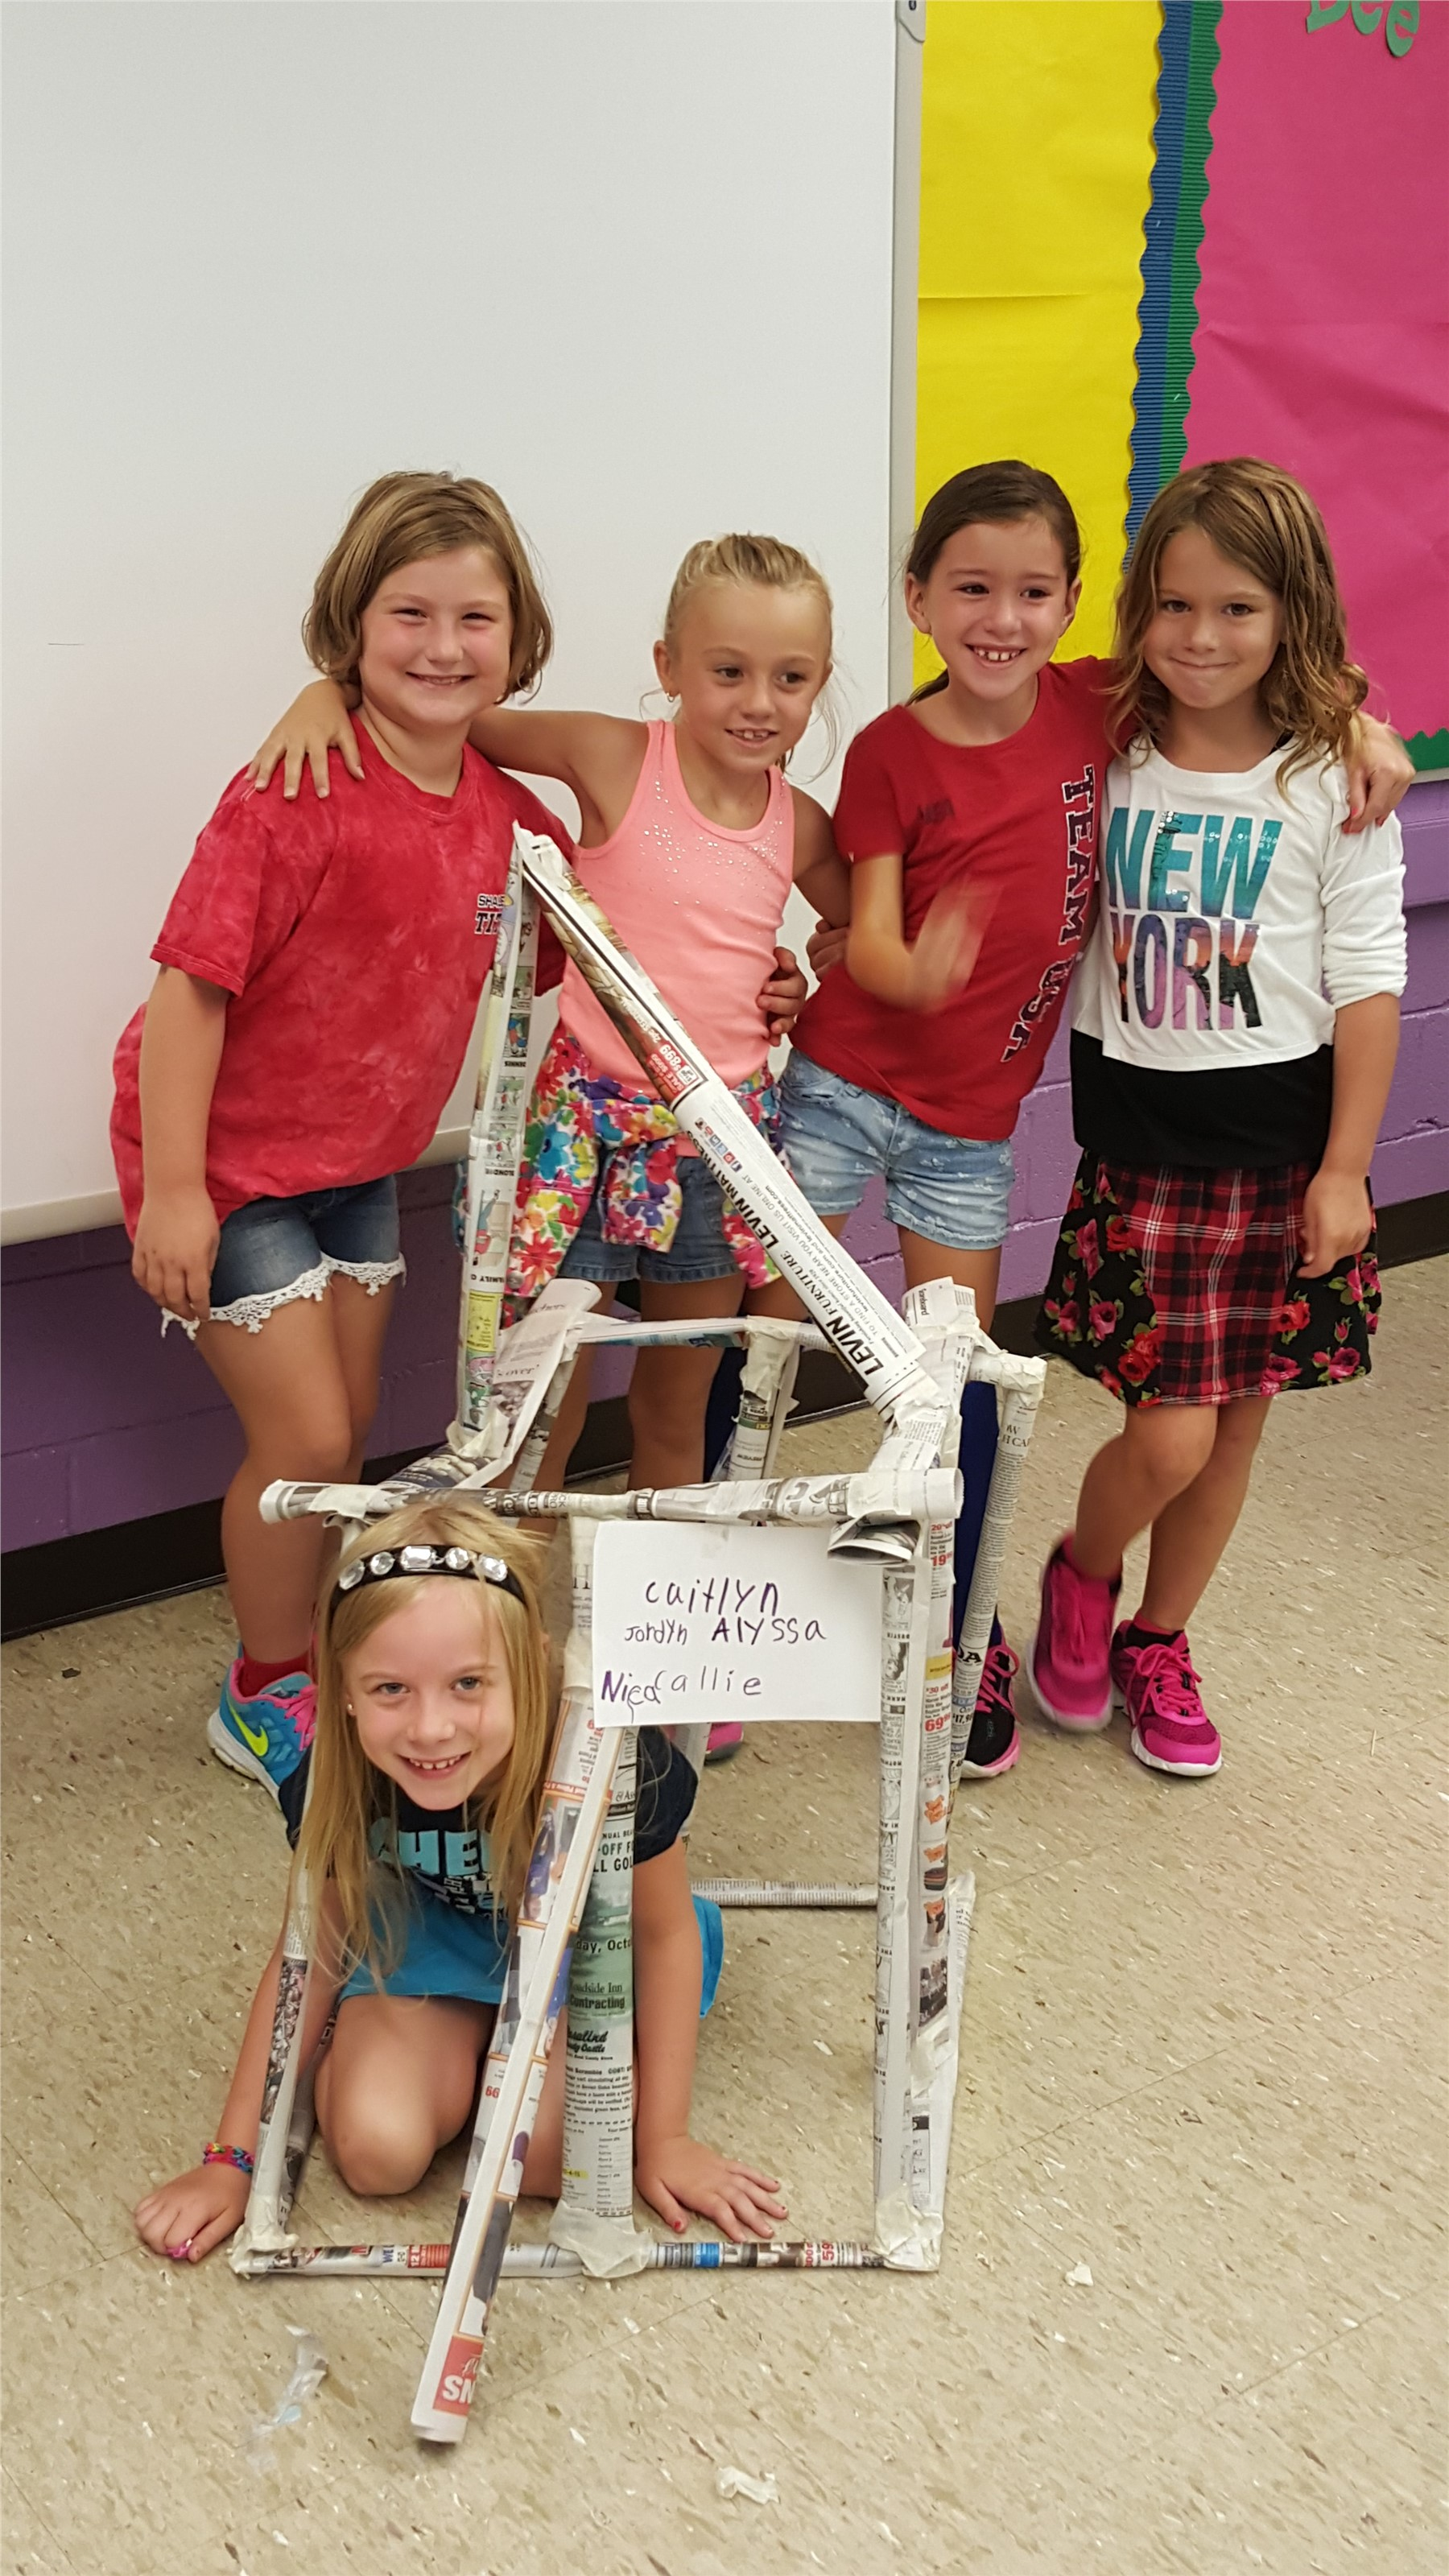 Students standing next to a three dimensional house that they created from newspaper rolls.